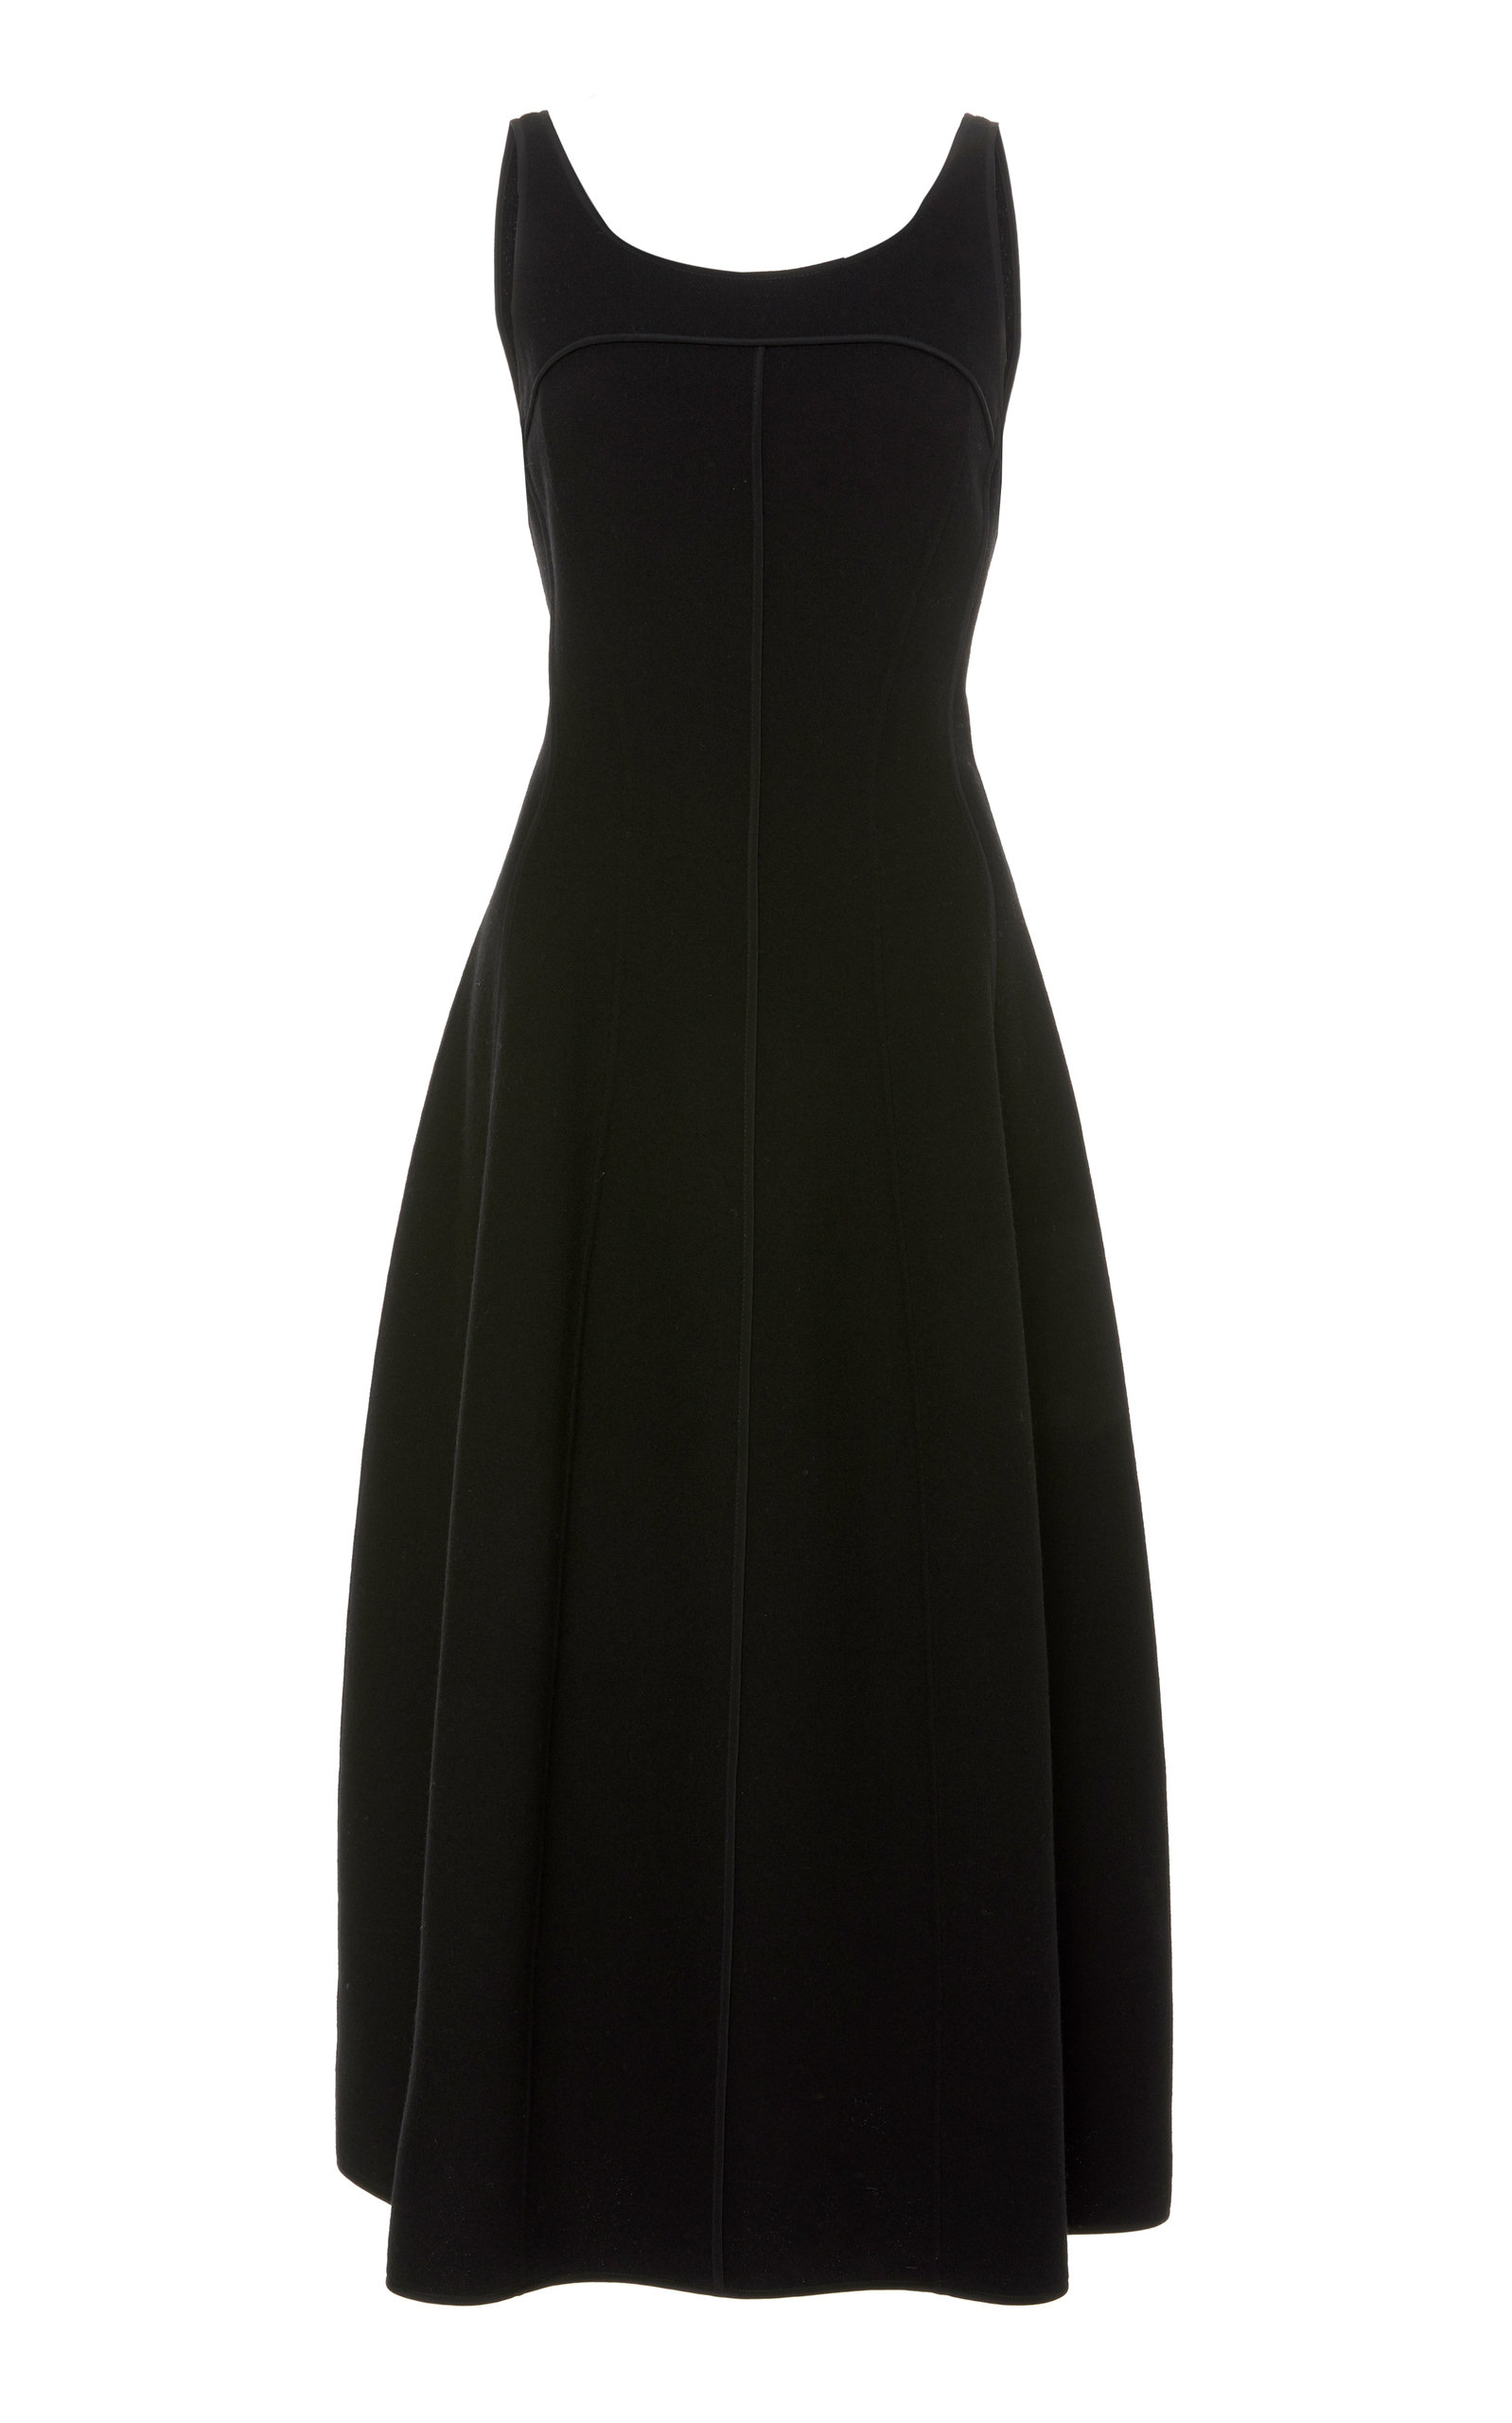 Narciso Rodriguez DOUBLE FACE WOOL DRESS